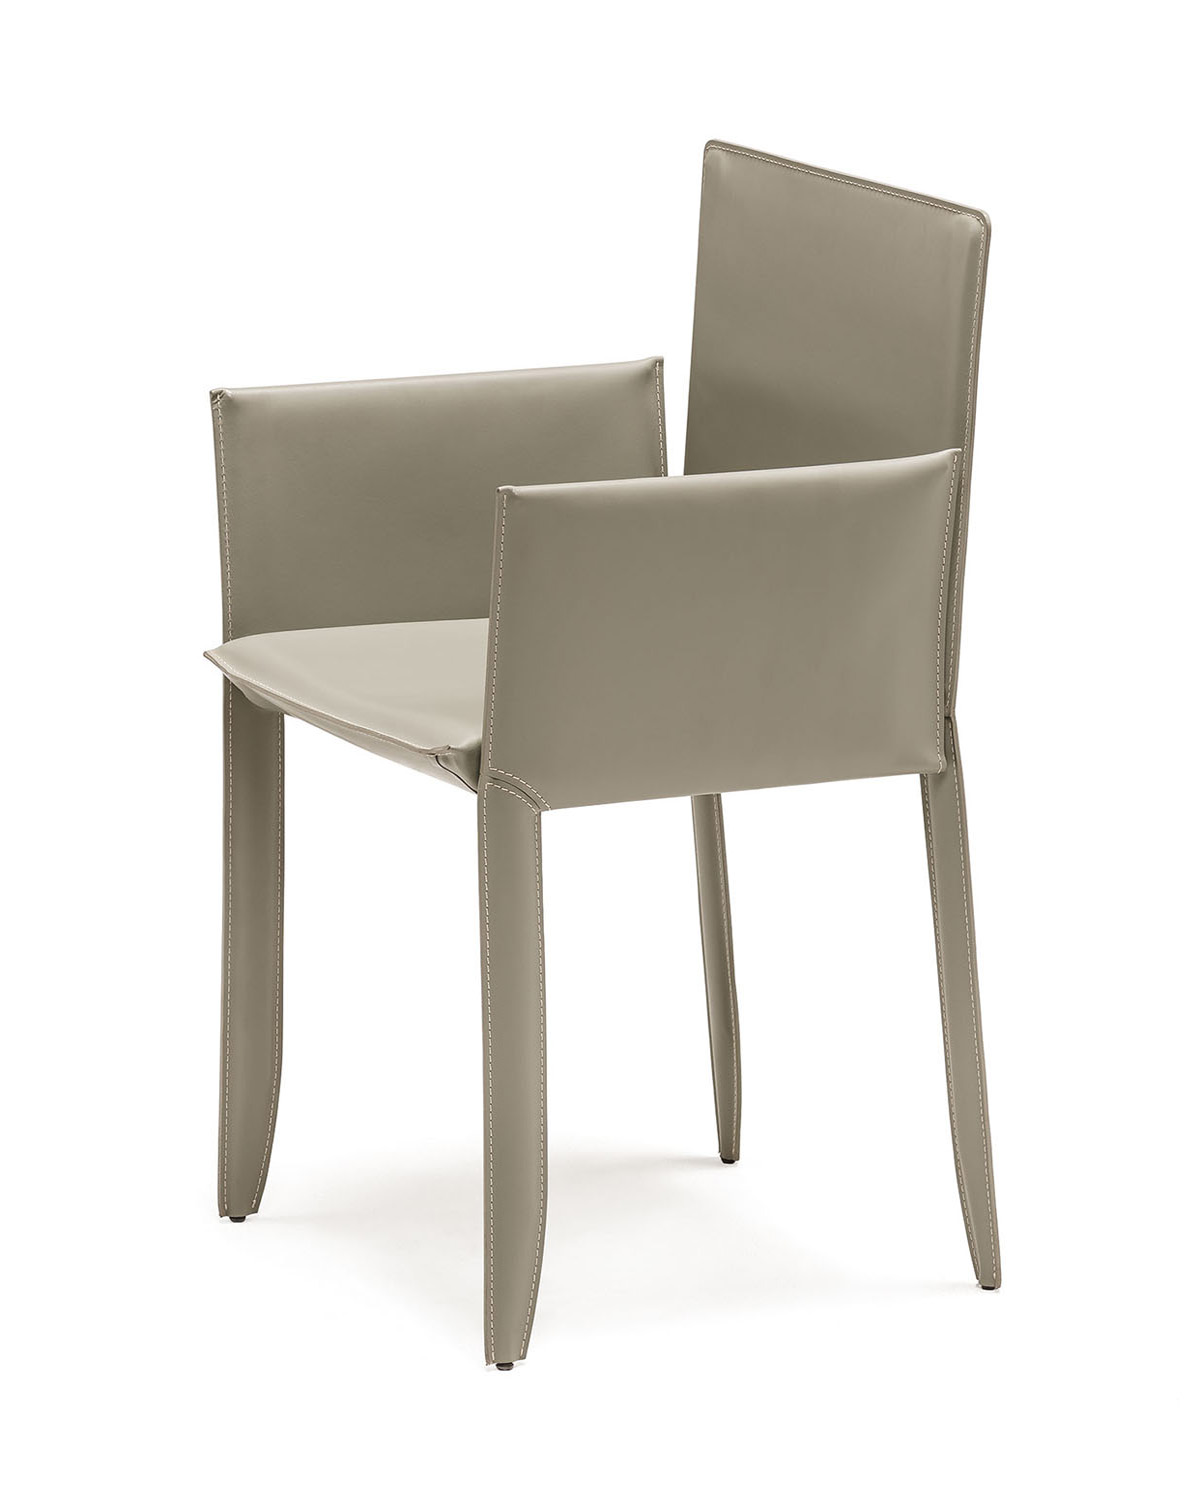 piuma edition armchair by cattelan italia